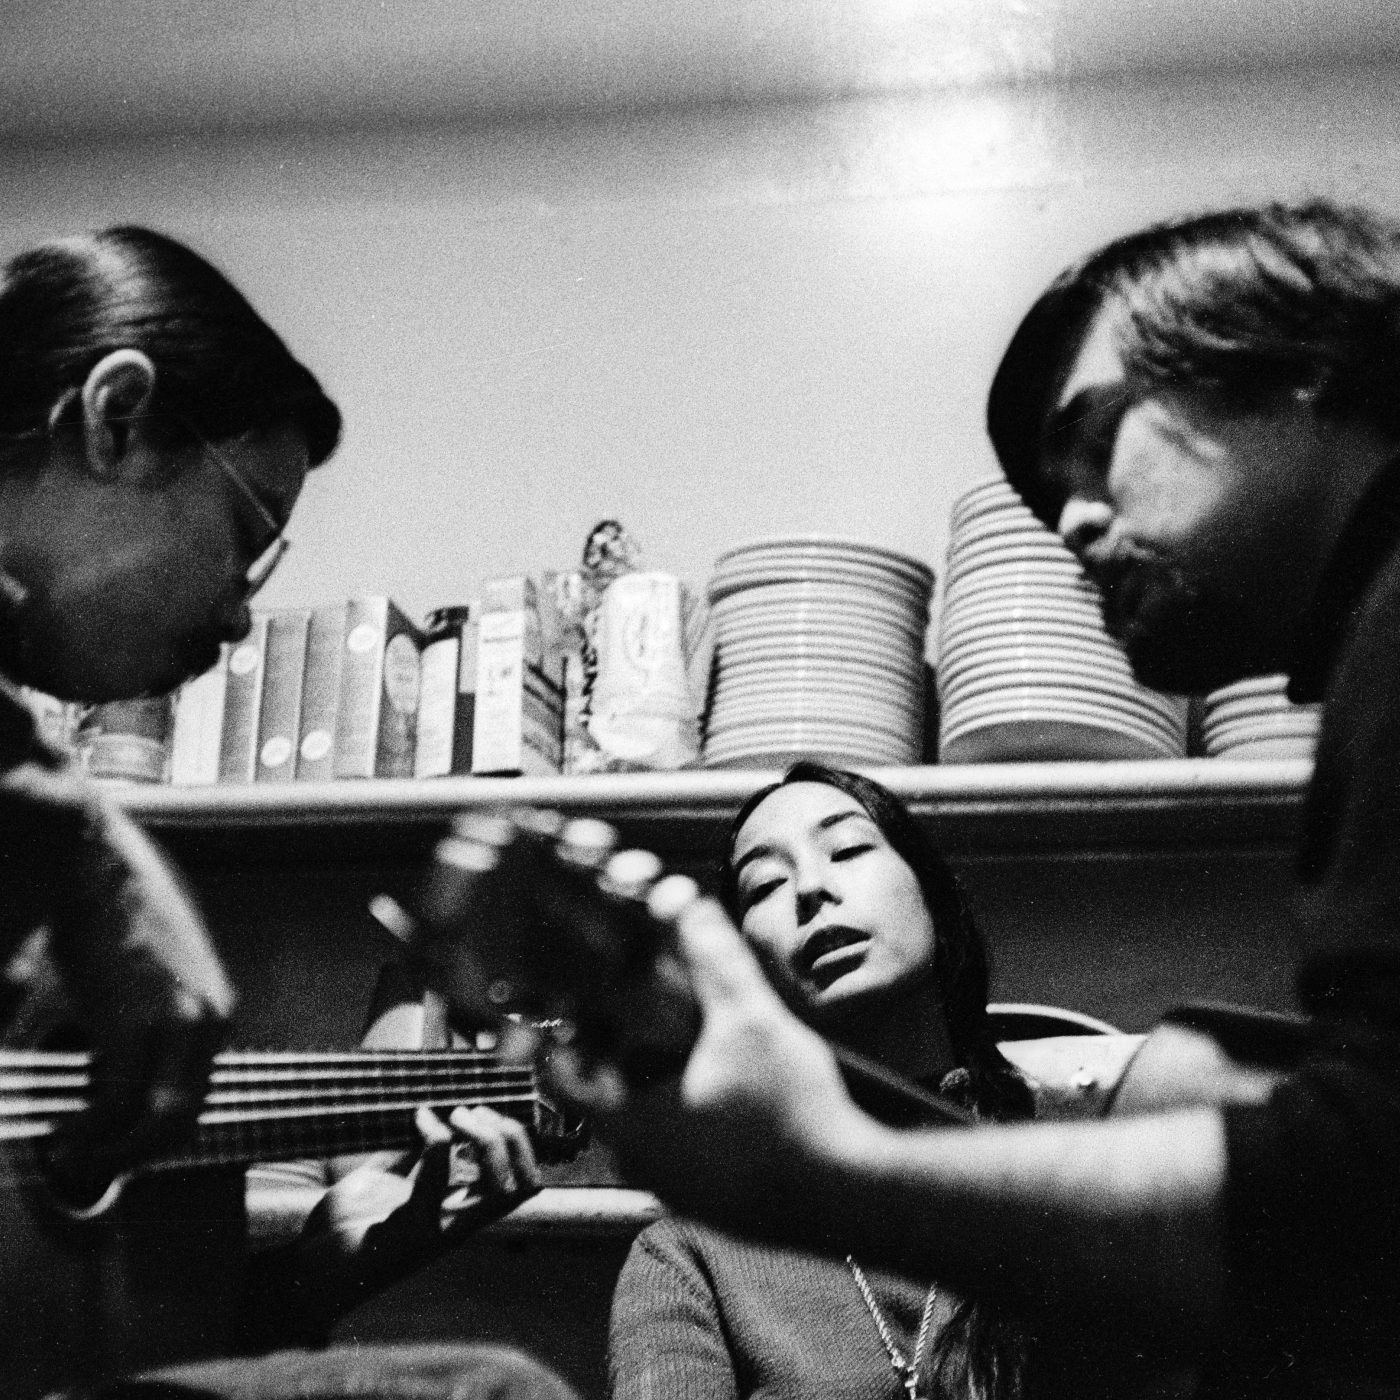 Bob Hsiang, A Grain of Sand trio rehearsal at Folk City, 1971